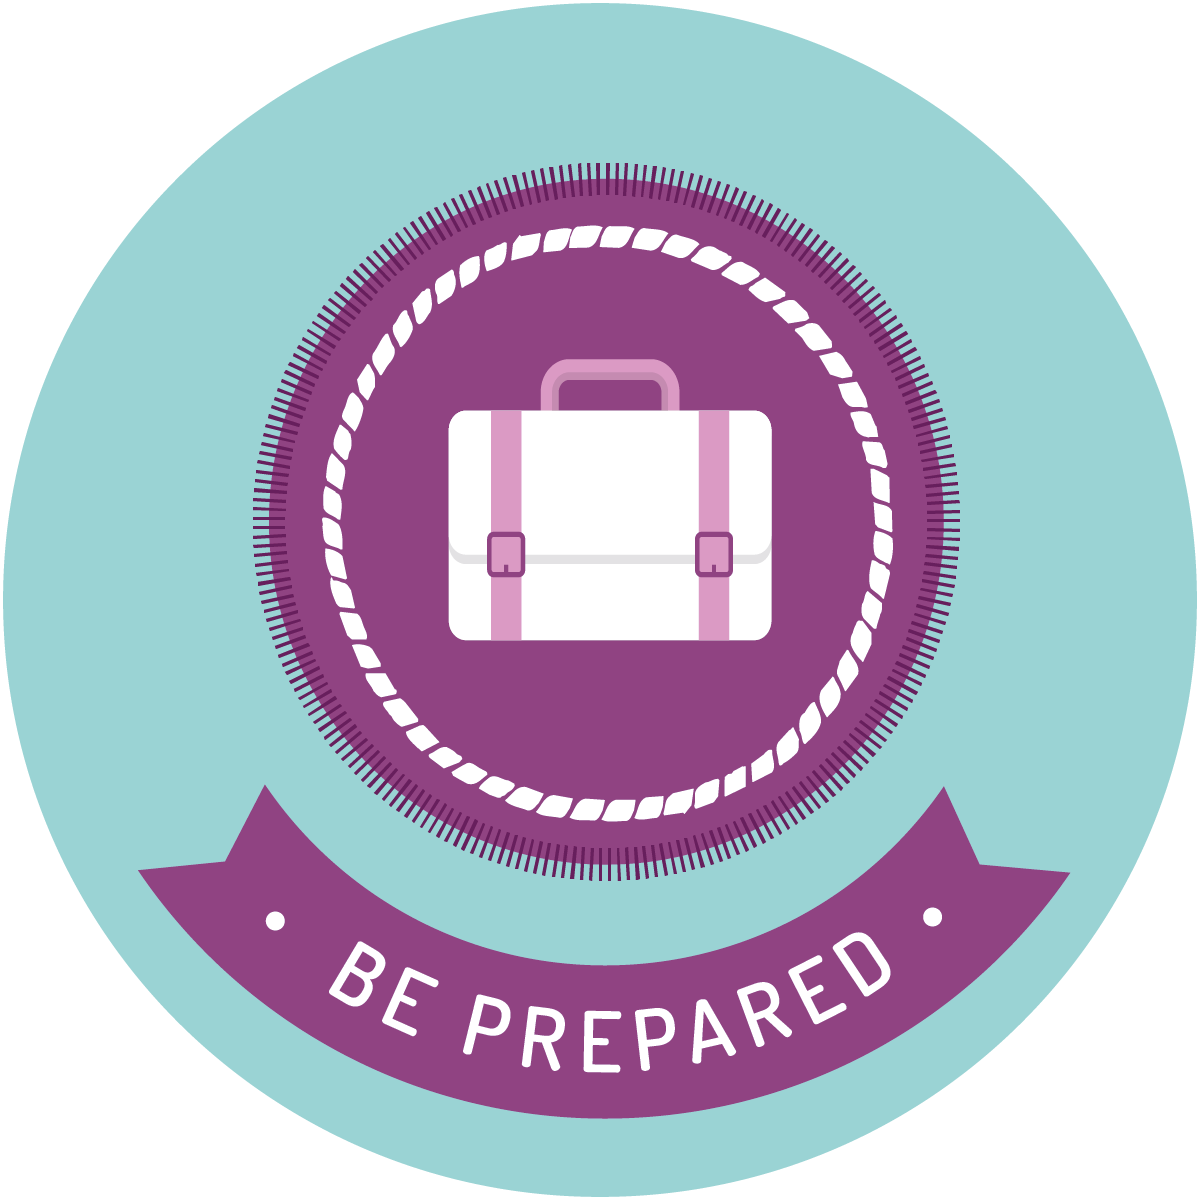 Be prepared scout badge icon